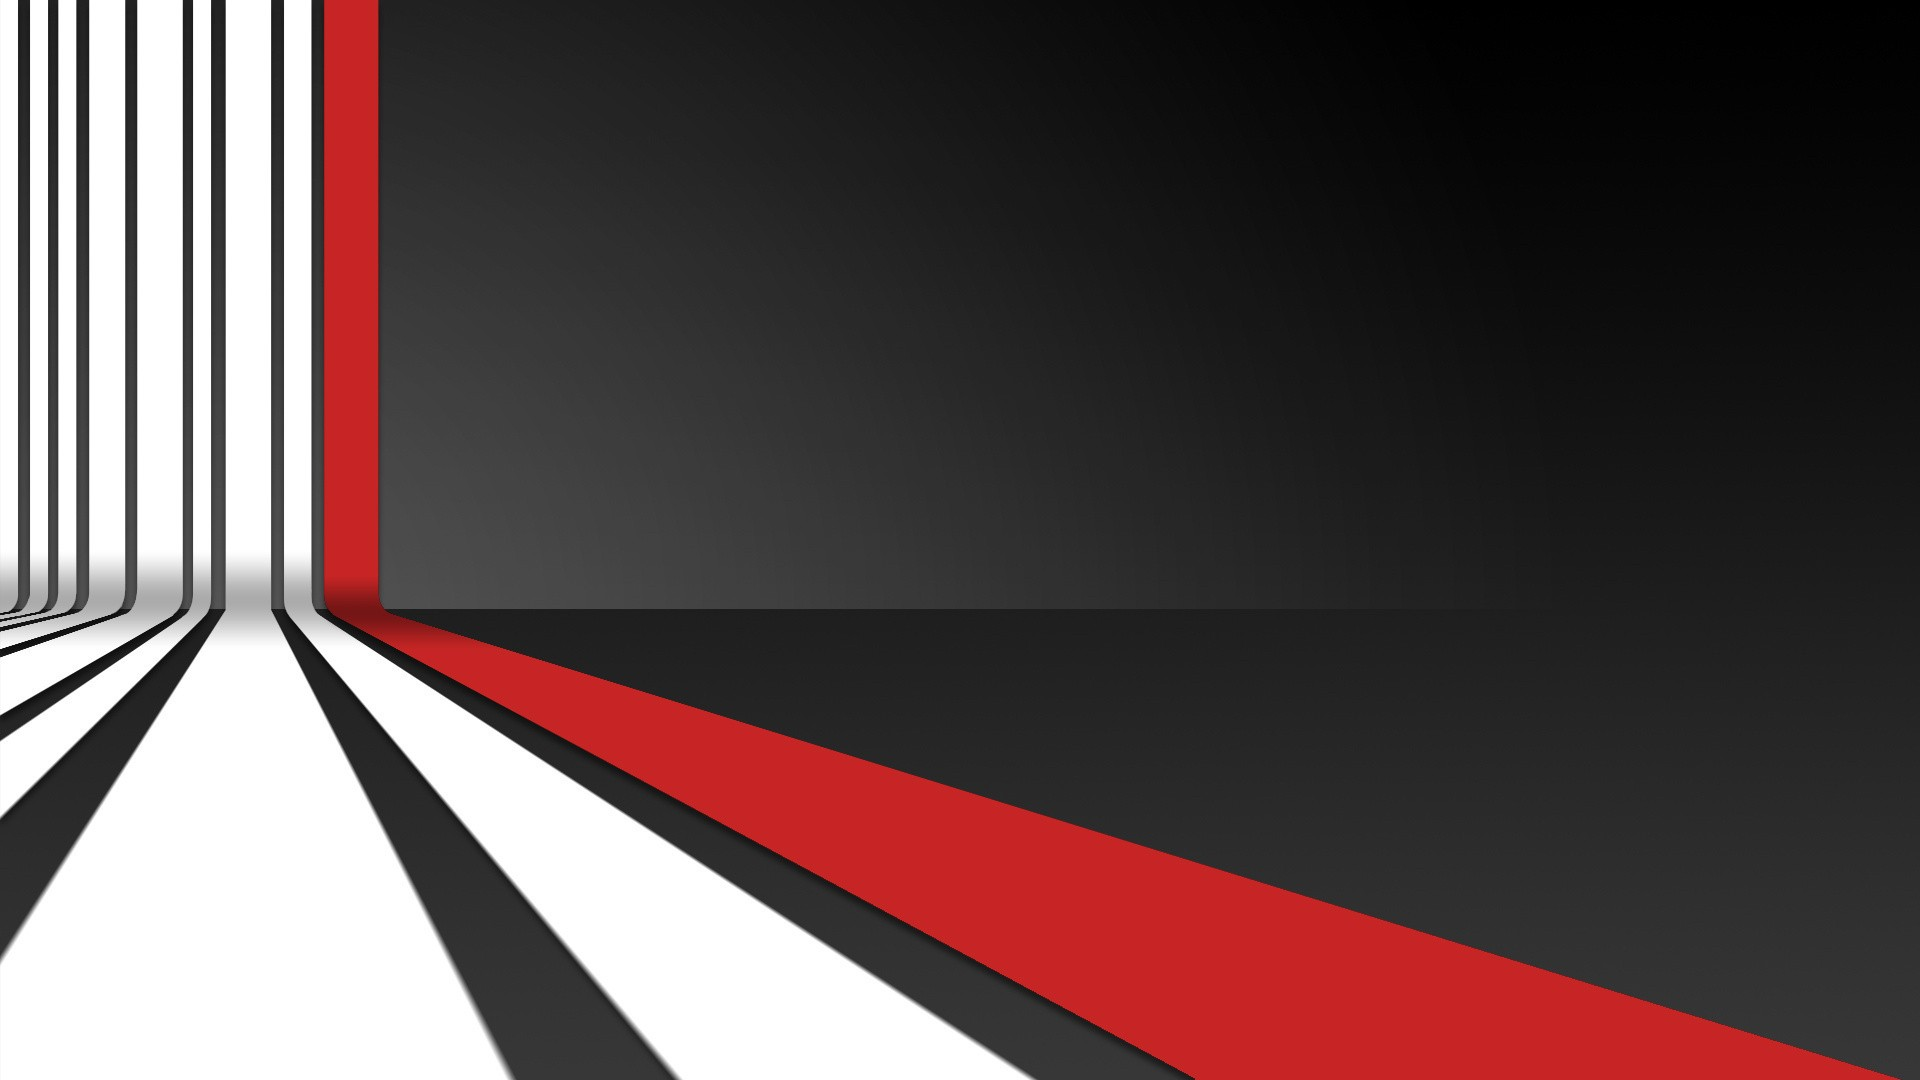 Red And Black Abstract Backgrounds - WallpaperSafari Hd Wallpaper 1920x1080 Abstract